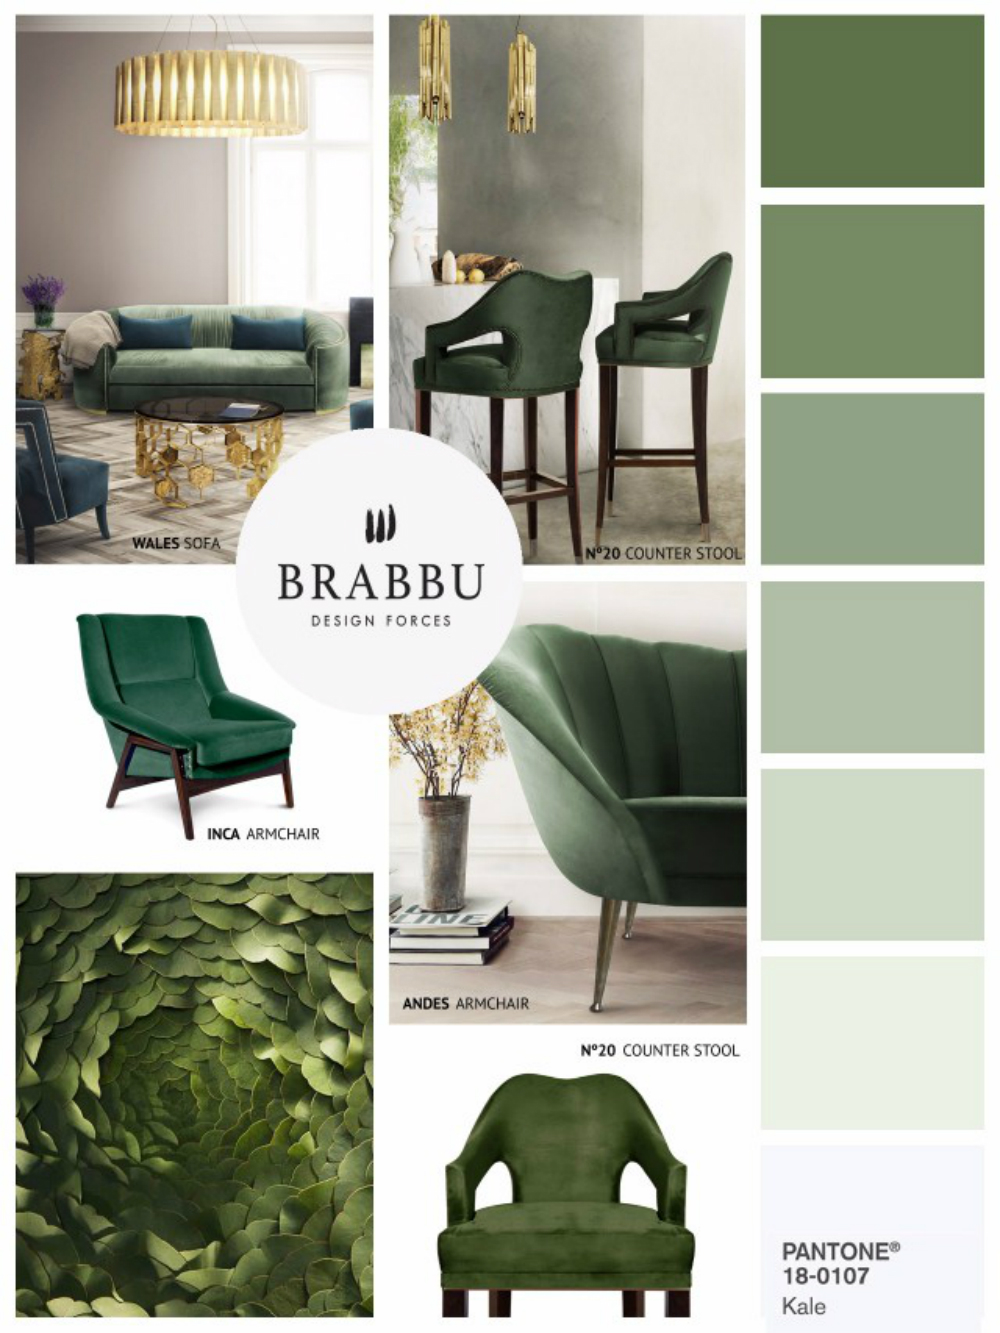 Home decor color trends for spring 2017 according to pantone - 2017 pantone view home interiors palettes ...